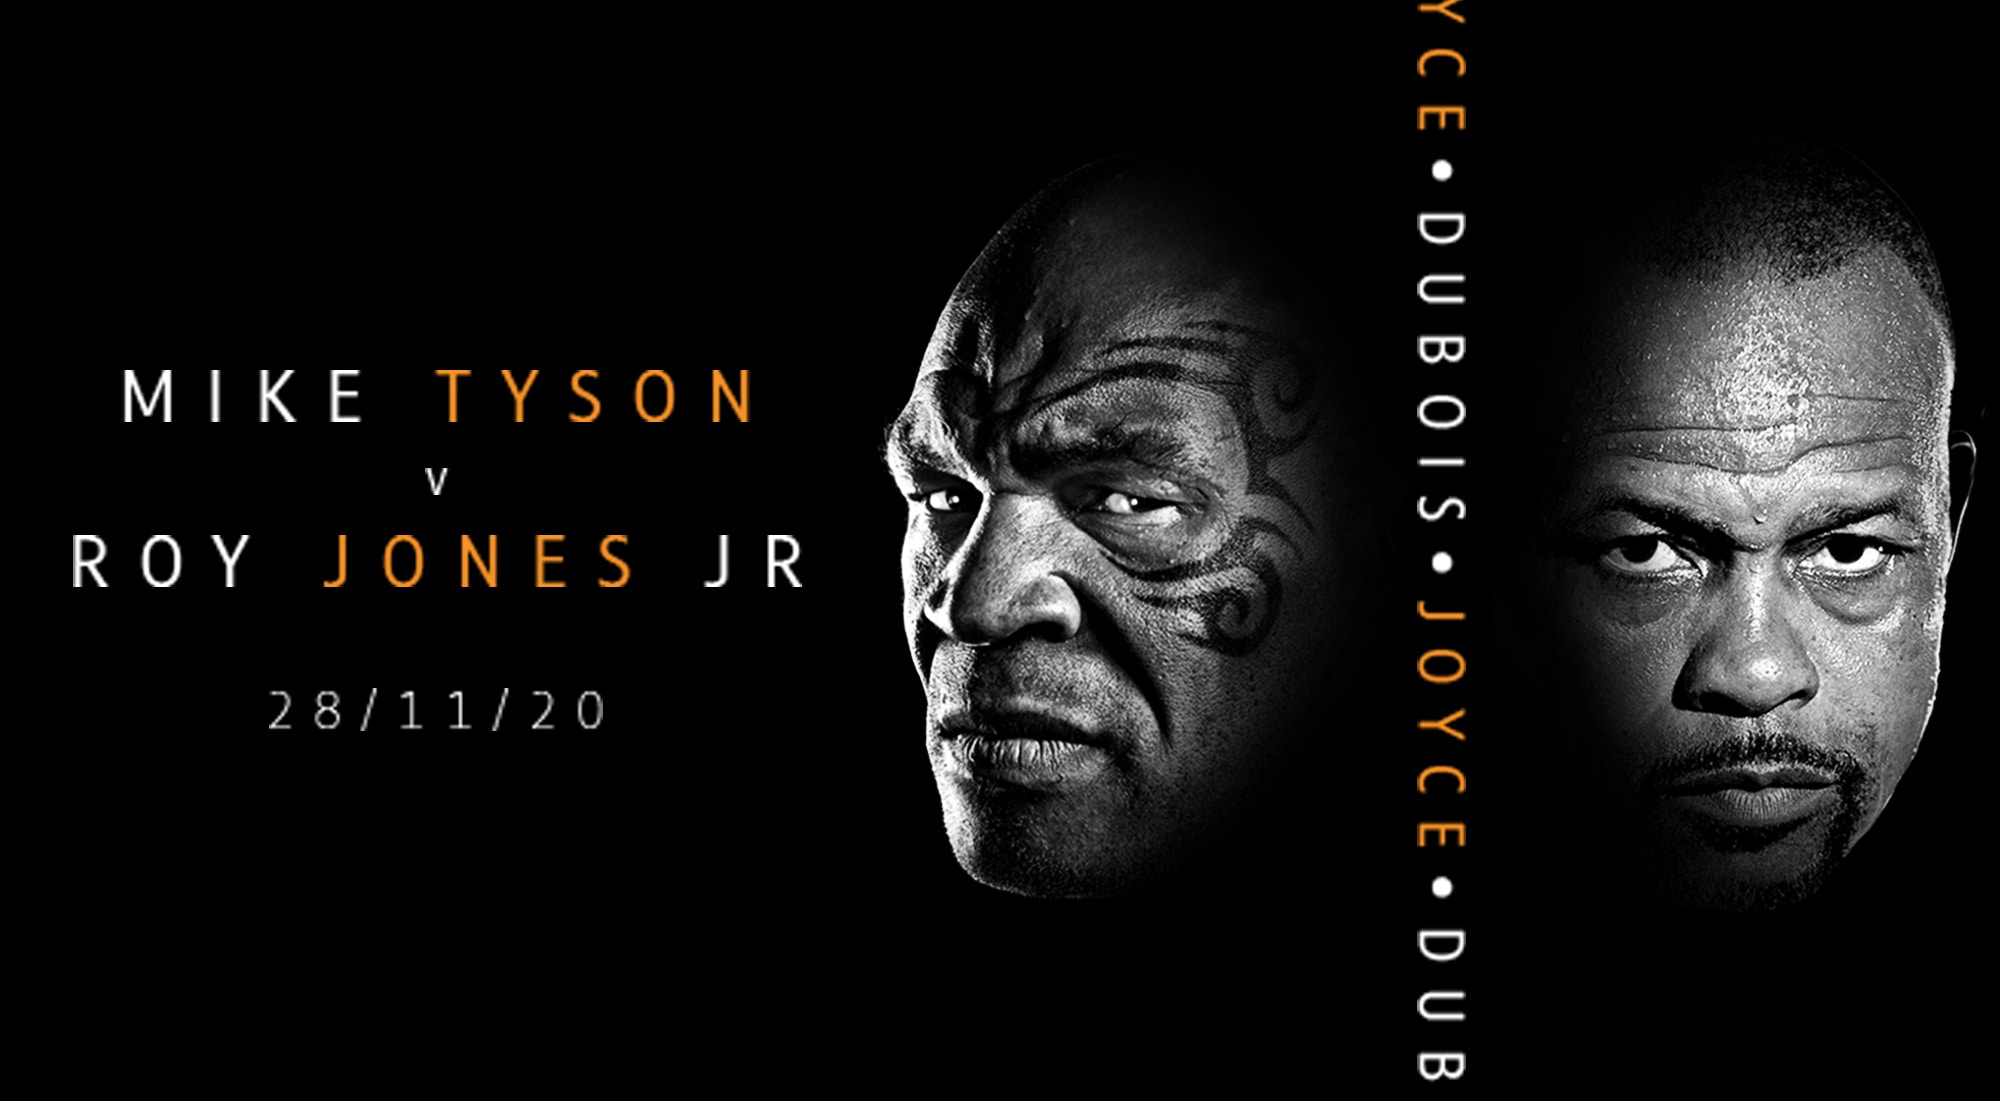 Watch Mike Tyson vs Roy Jones Jr on BT Sport Box Office